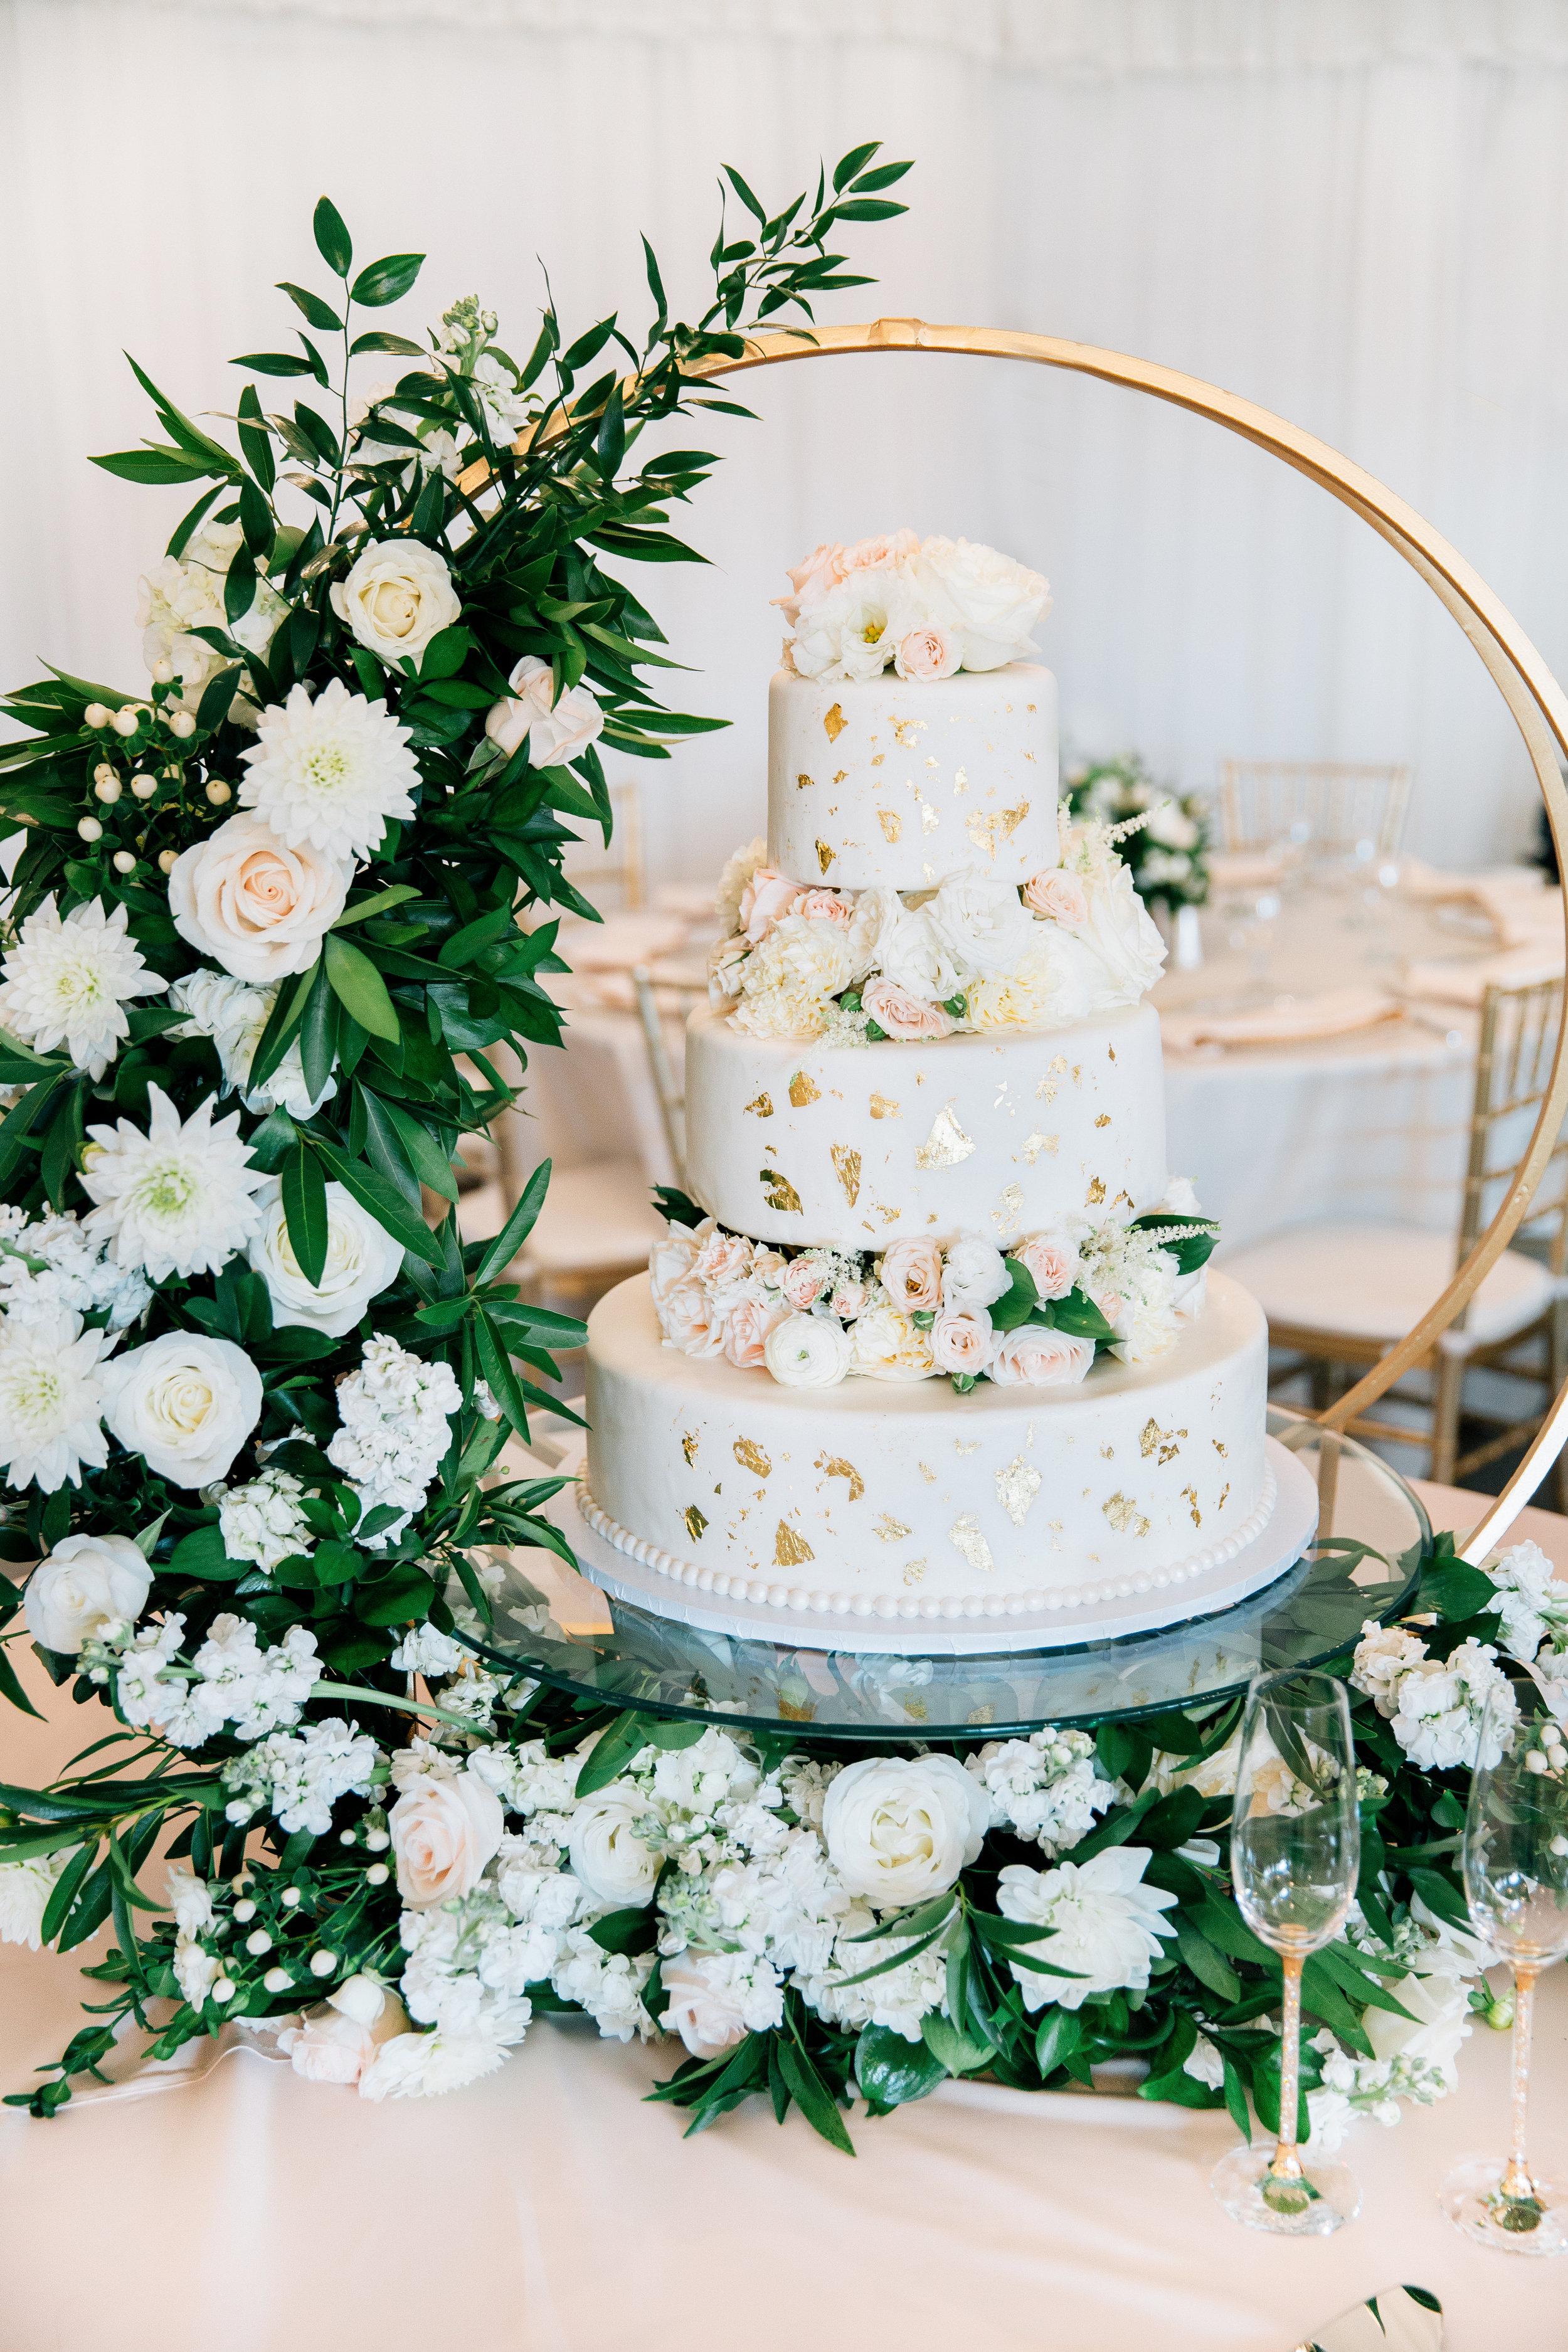 cake_round_stand_flowers_upscale_classic_reception_violette_fleurs_anna_perevertaylo.jpg